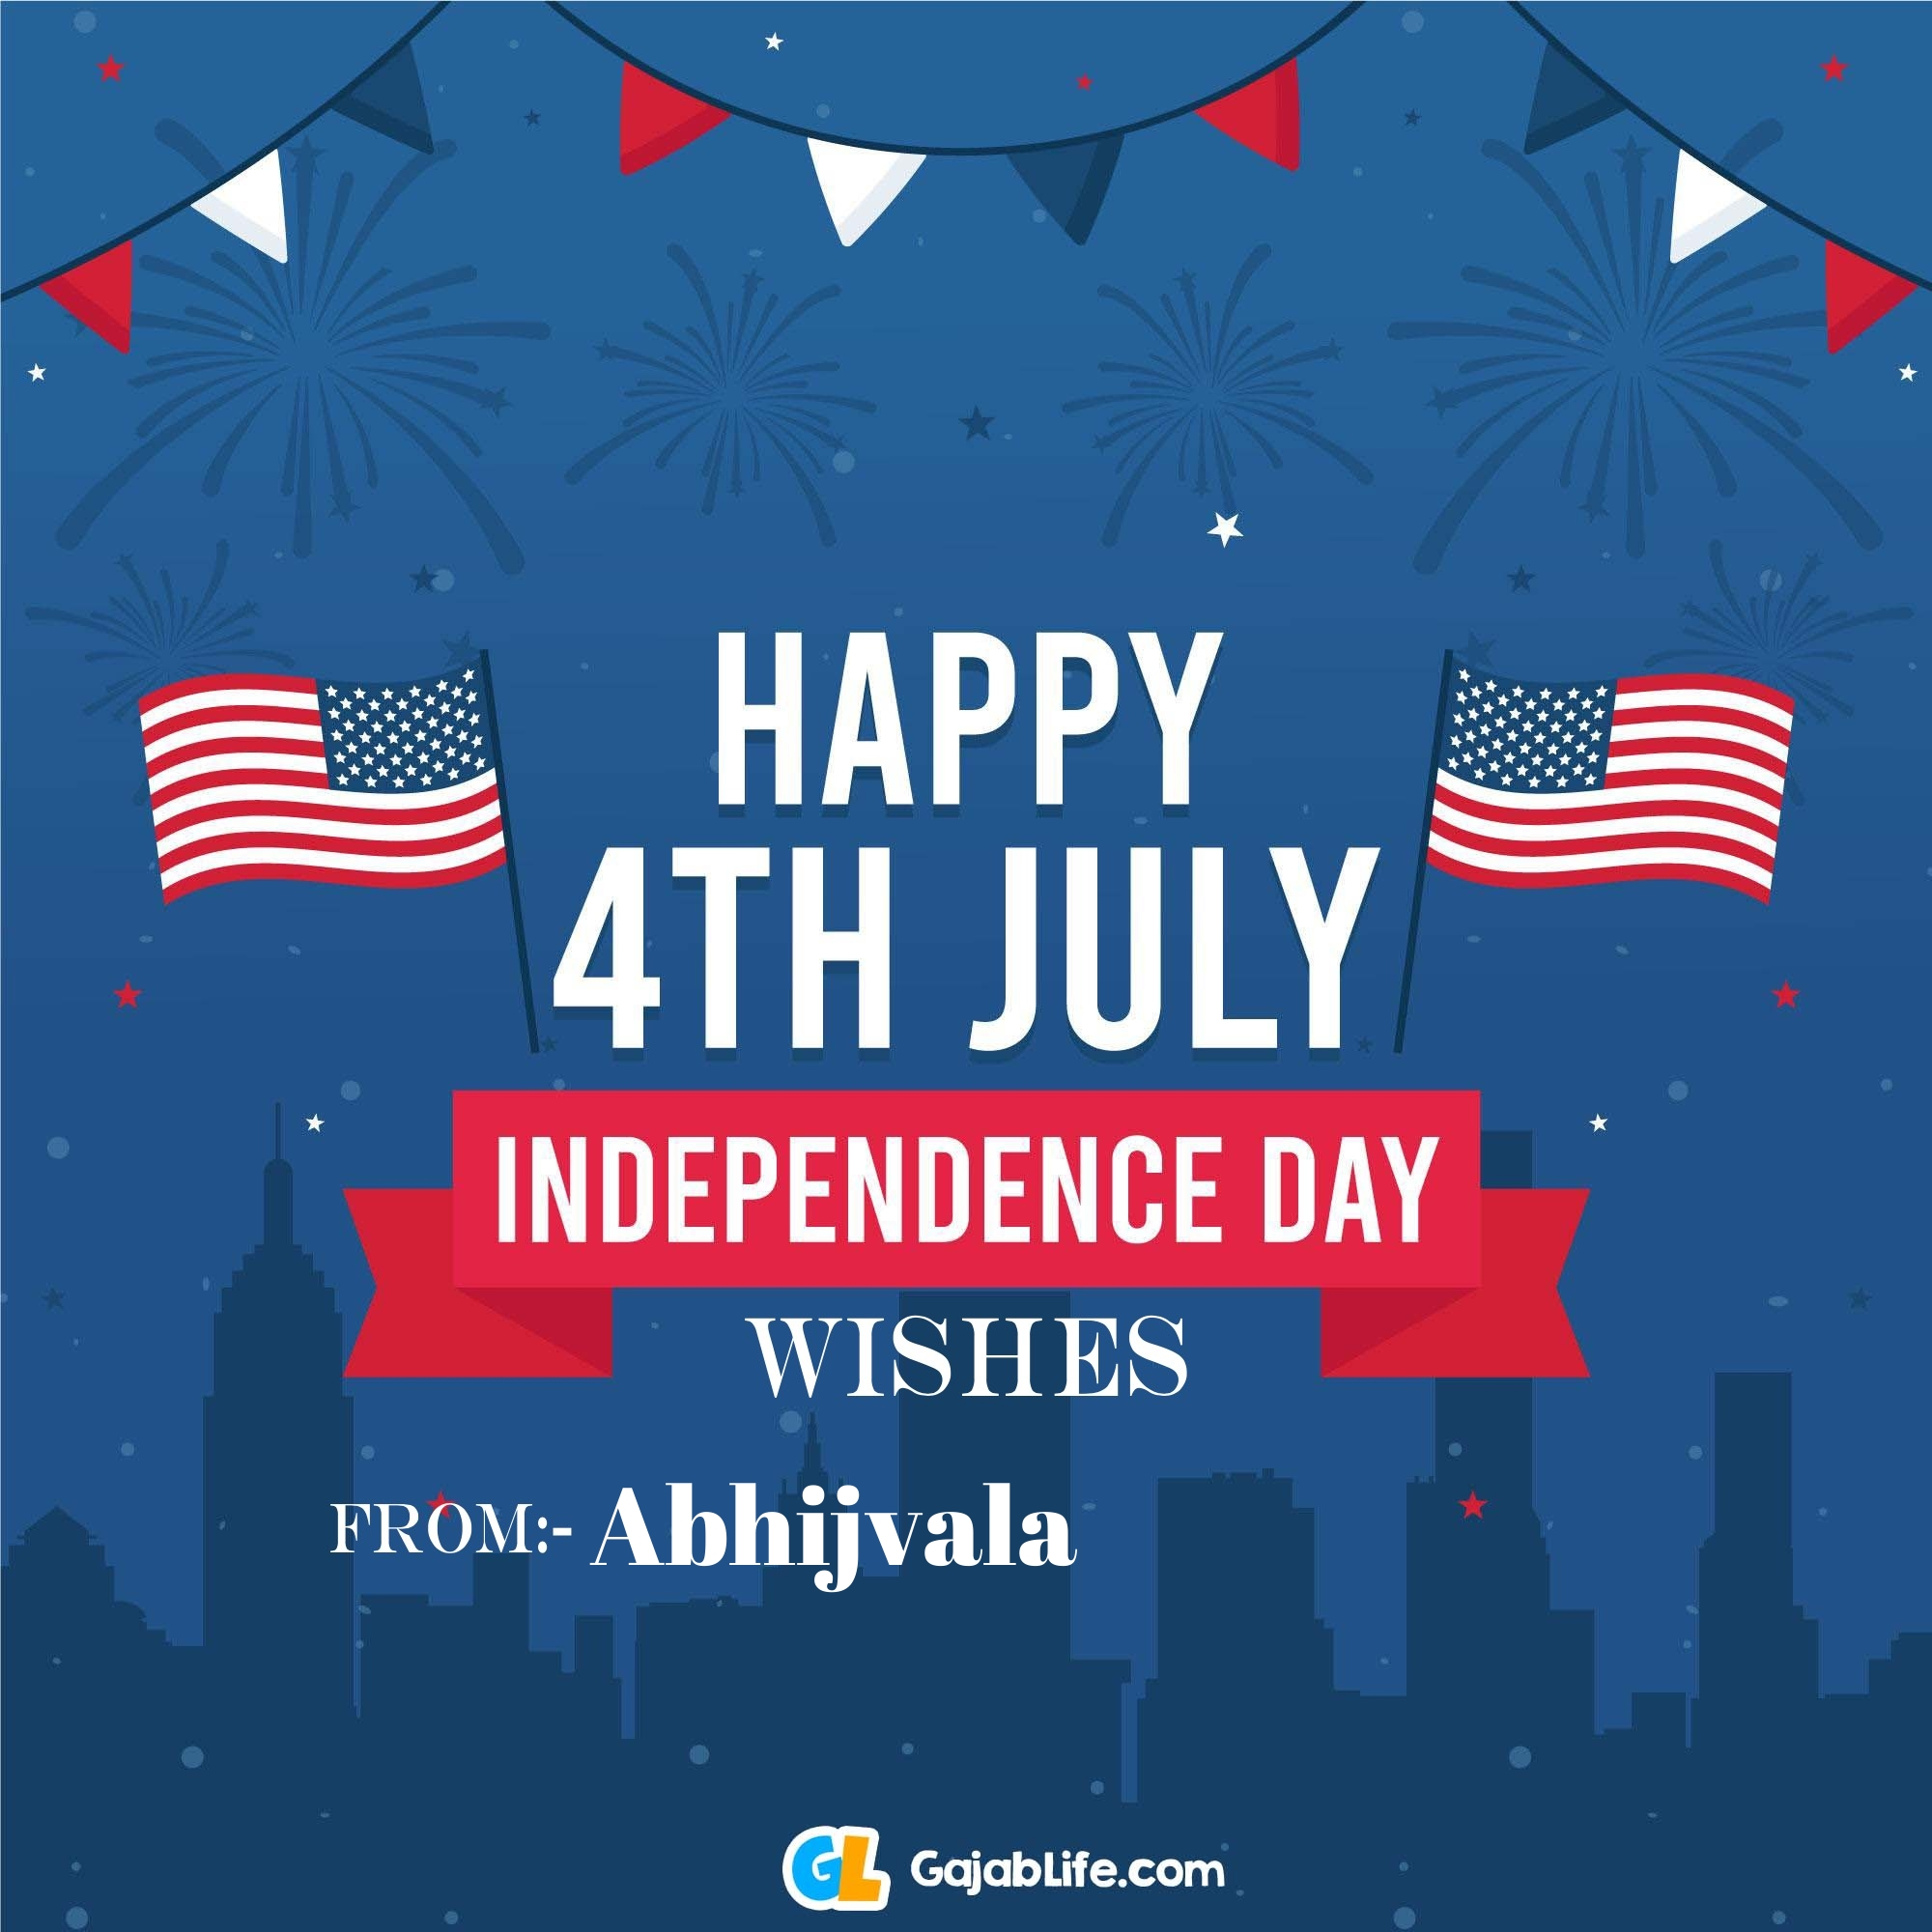 Abhijvala happy independence day united states of america images